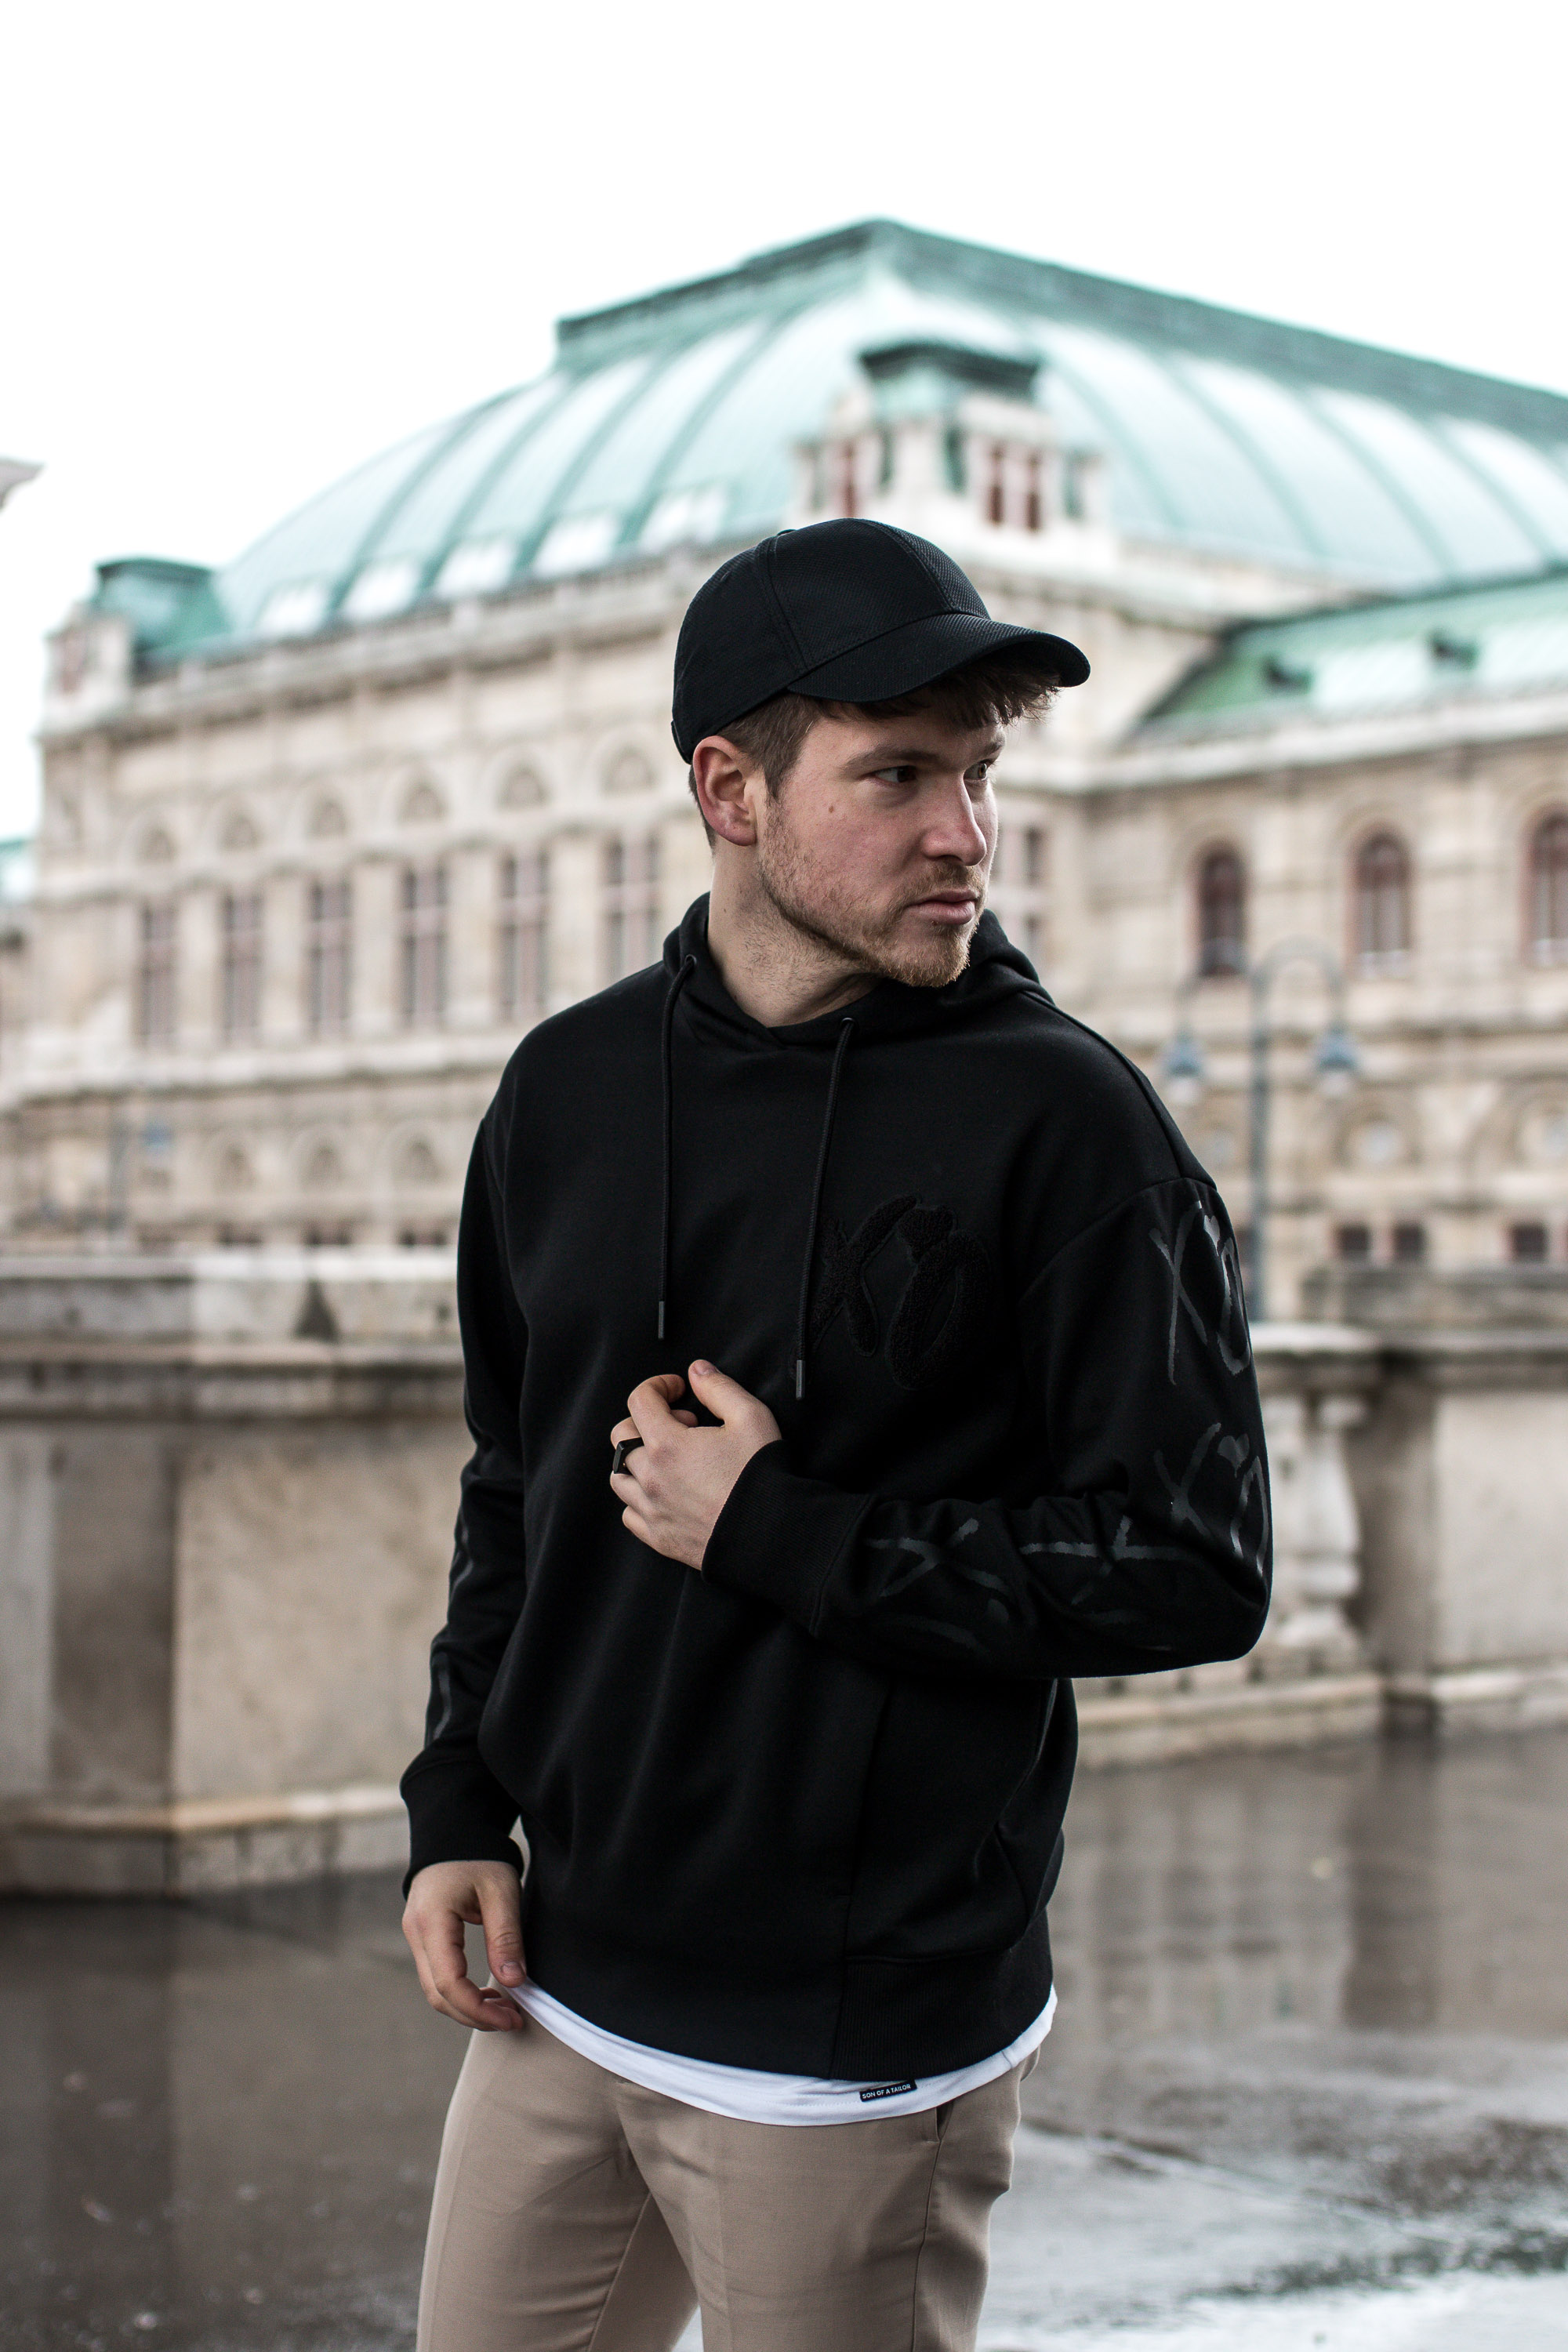 H&M Spring Icons by The Weeknd - Meanwhile in Awesometown Austrian Mens Fashion Blogger - Wiener Blogger 3